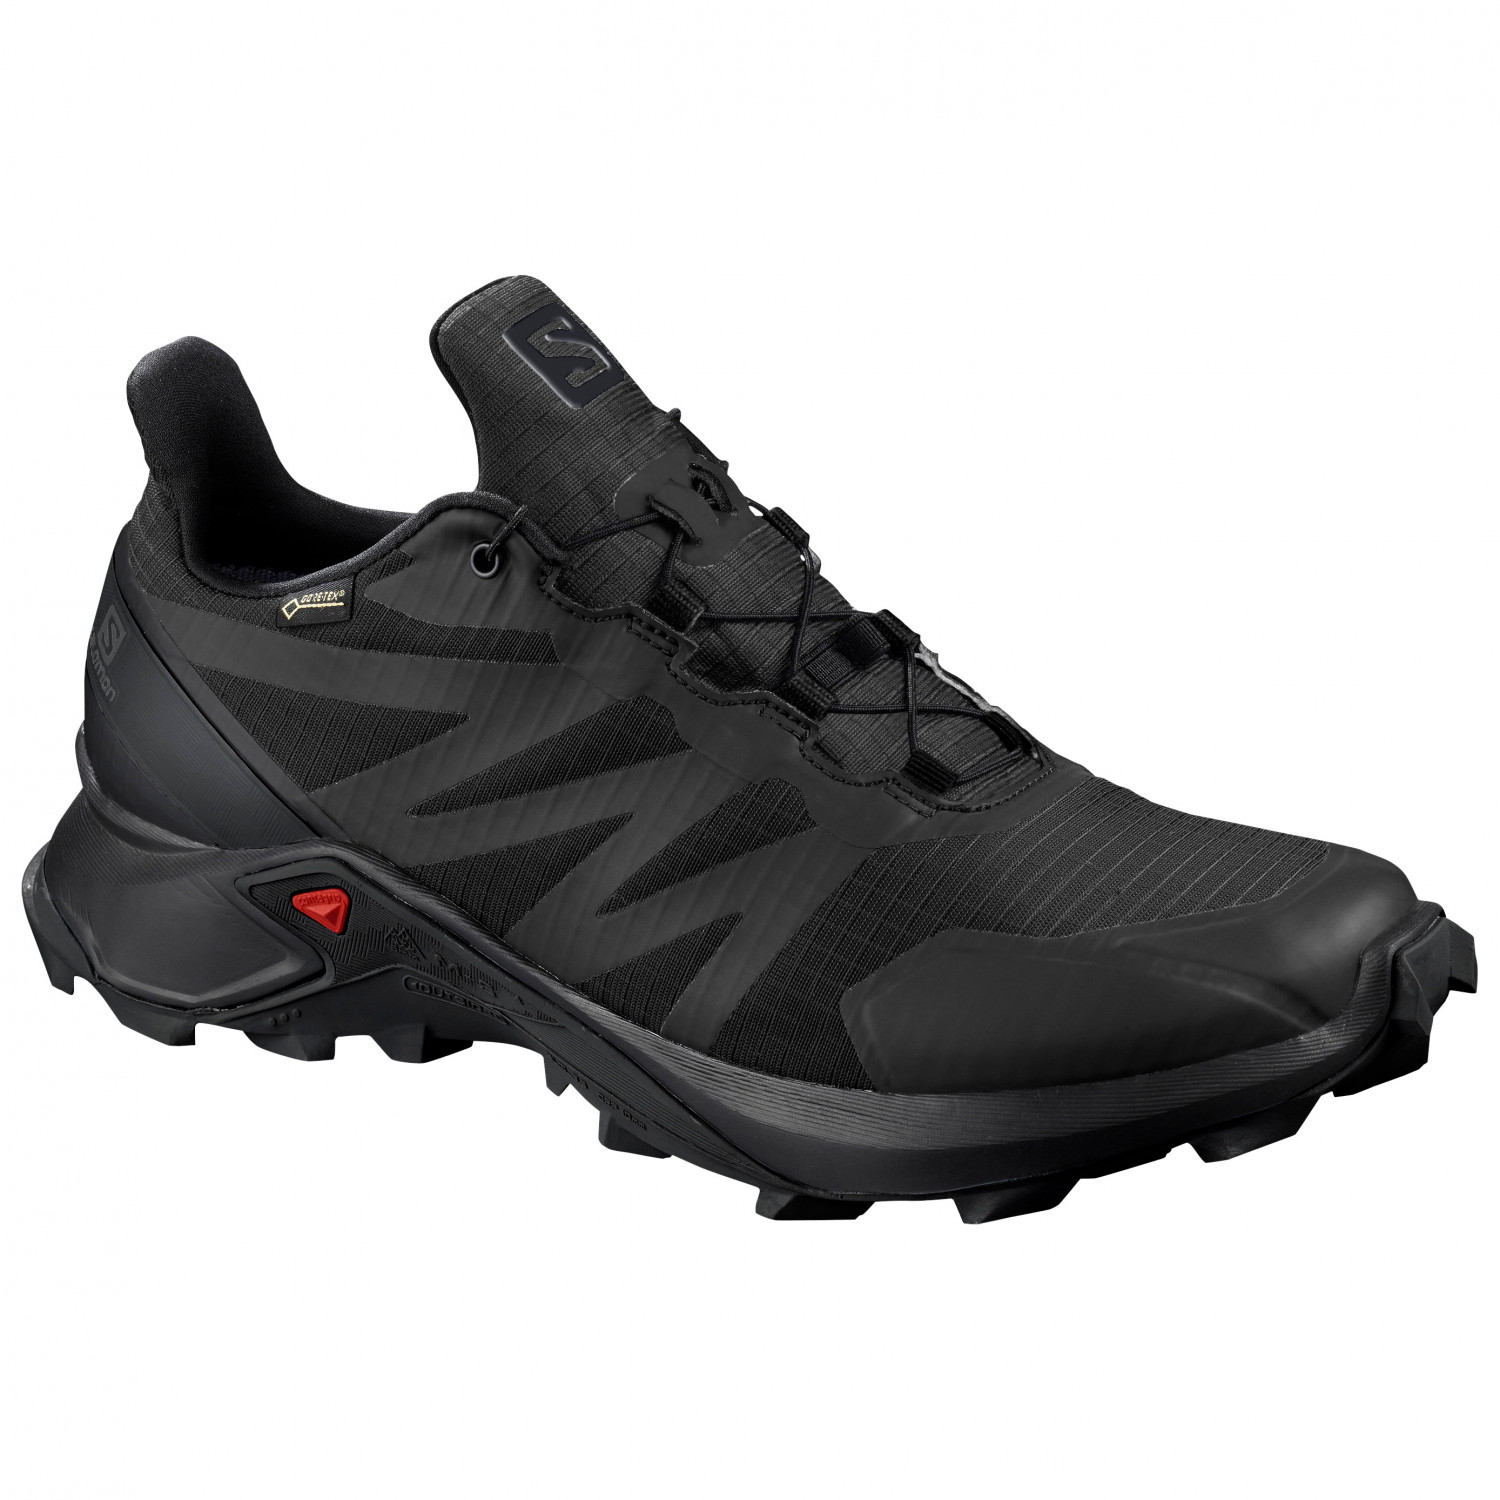 Salomon Women's Supercross GTX Trailrunningschuhe Black Black Black | 4 (UK)